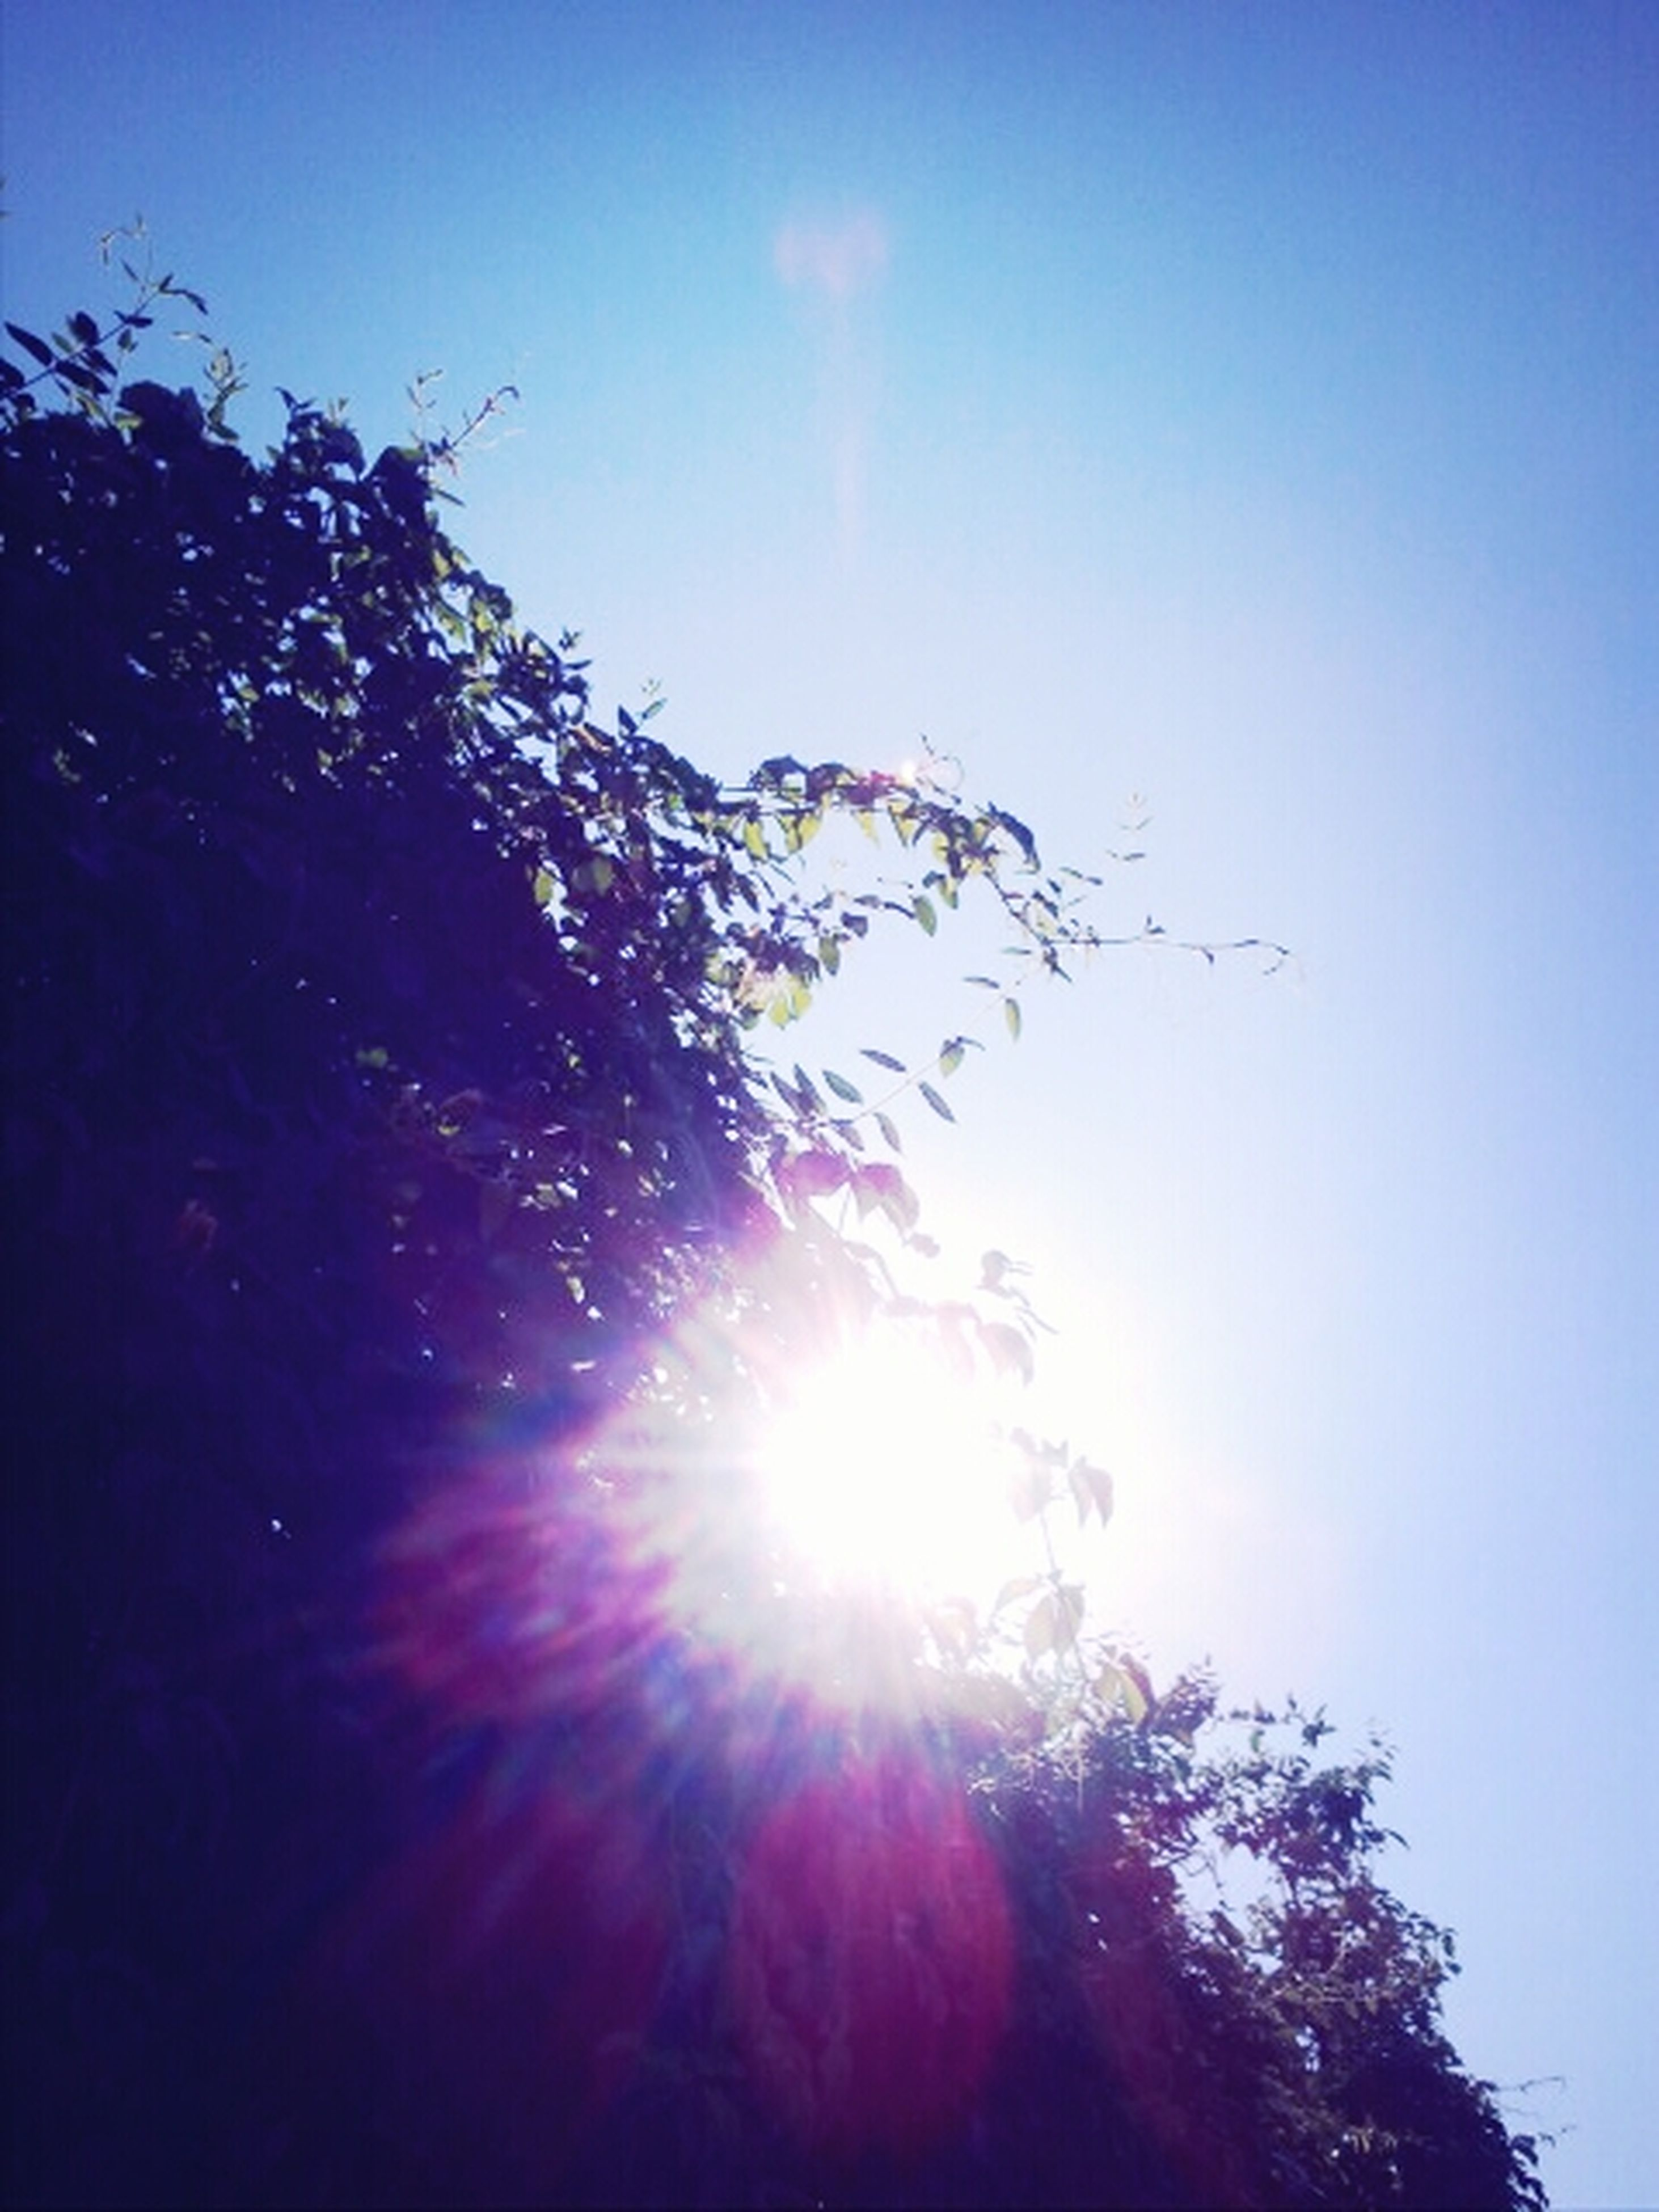 sun, low angle view, tree, clear sky, sunlight, sunbeam, lens flare, blue, beauty in nature, growth, nature, tranquility, sky, bright, sunny, scenics, tranquil scene, branch, silhouette, outdoors